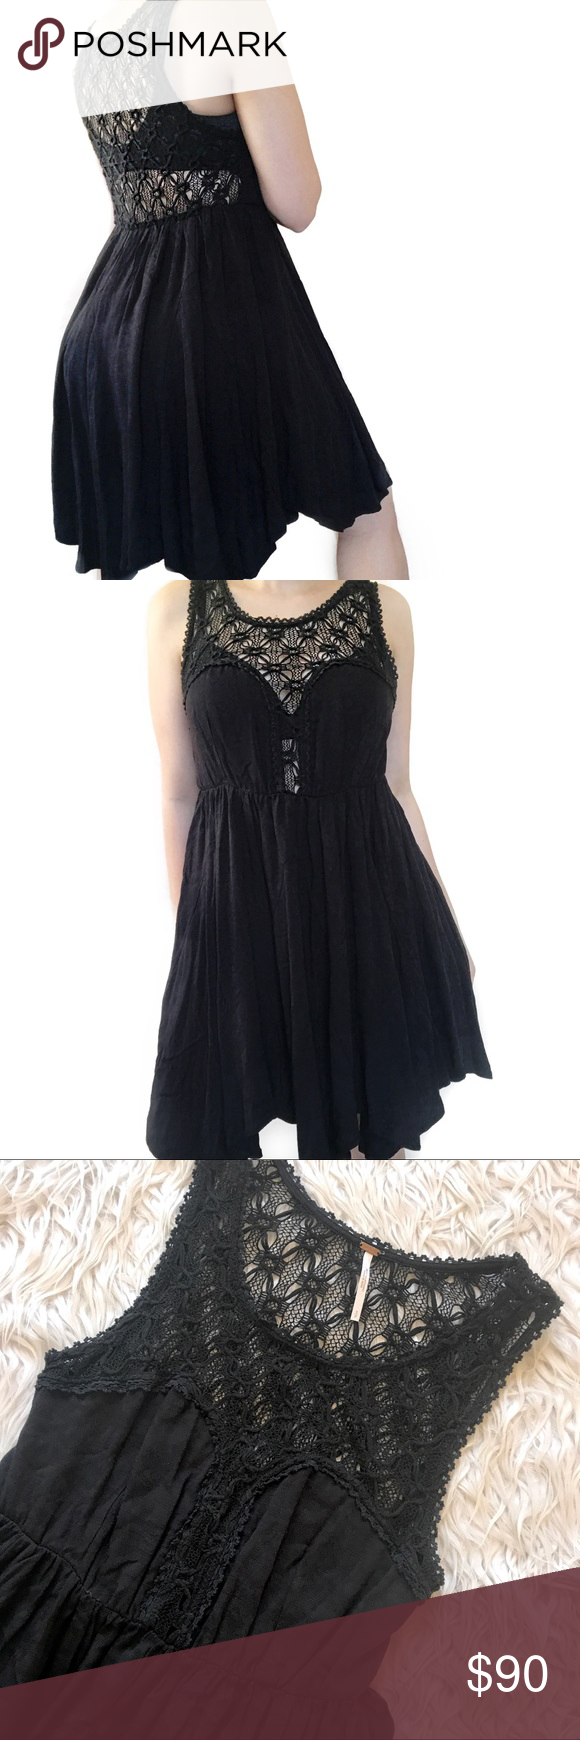 Free people u black flowy dress